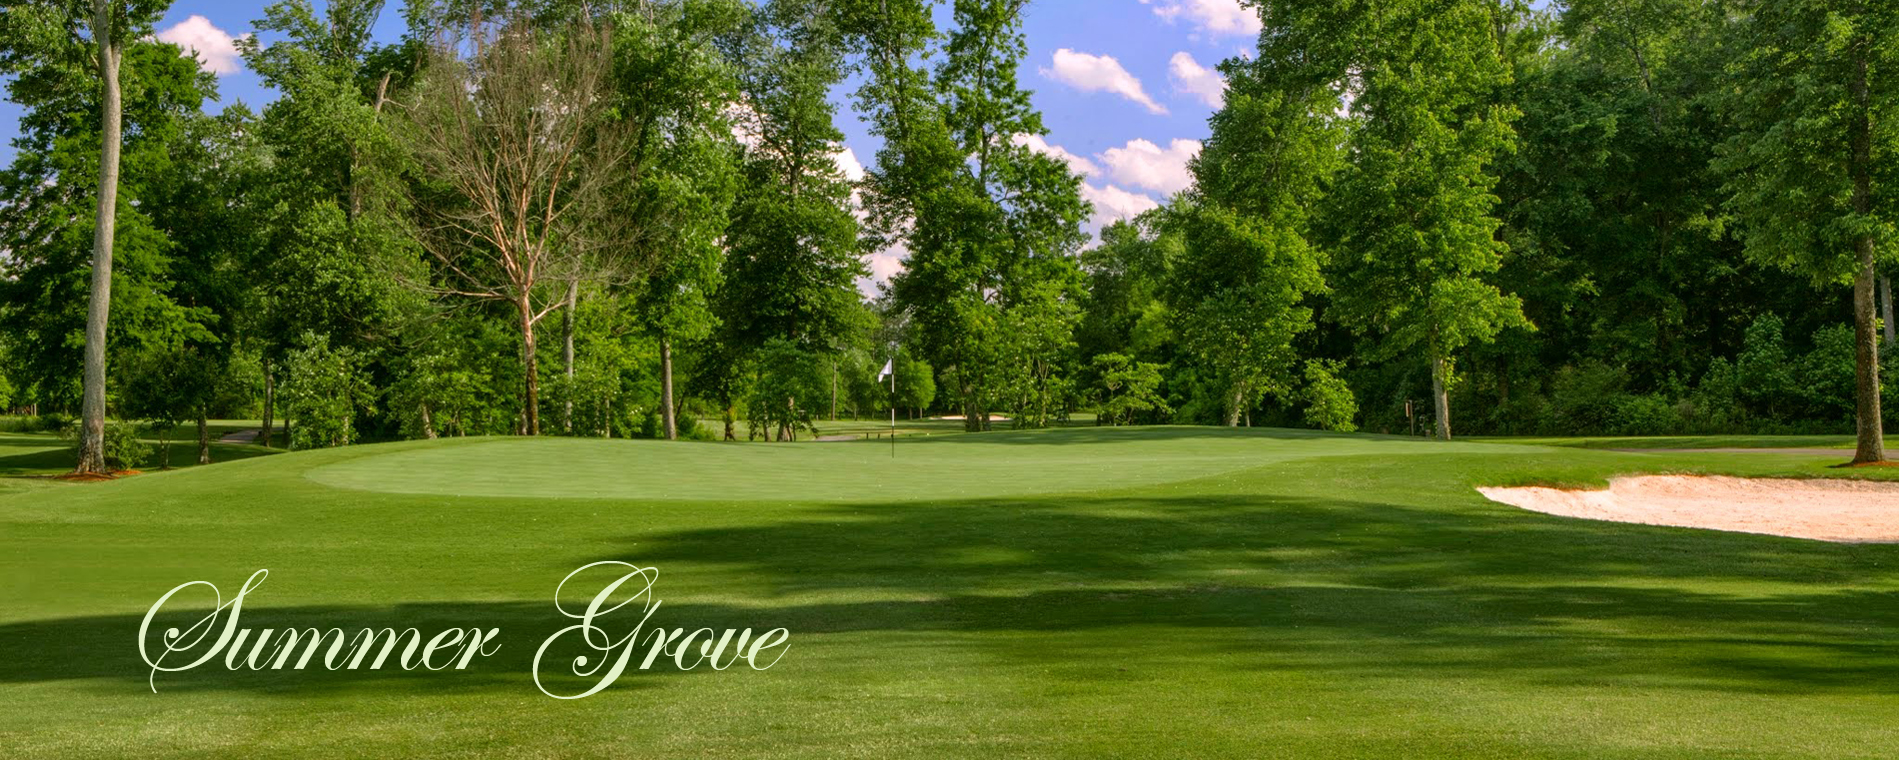 Summer Grove Golf Club 1